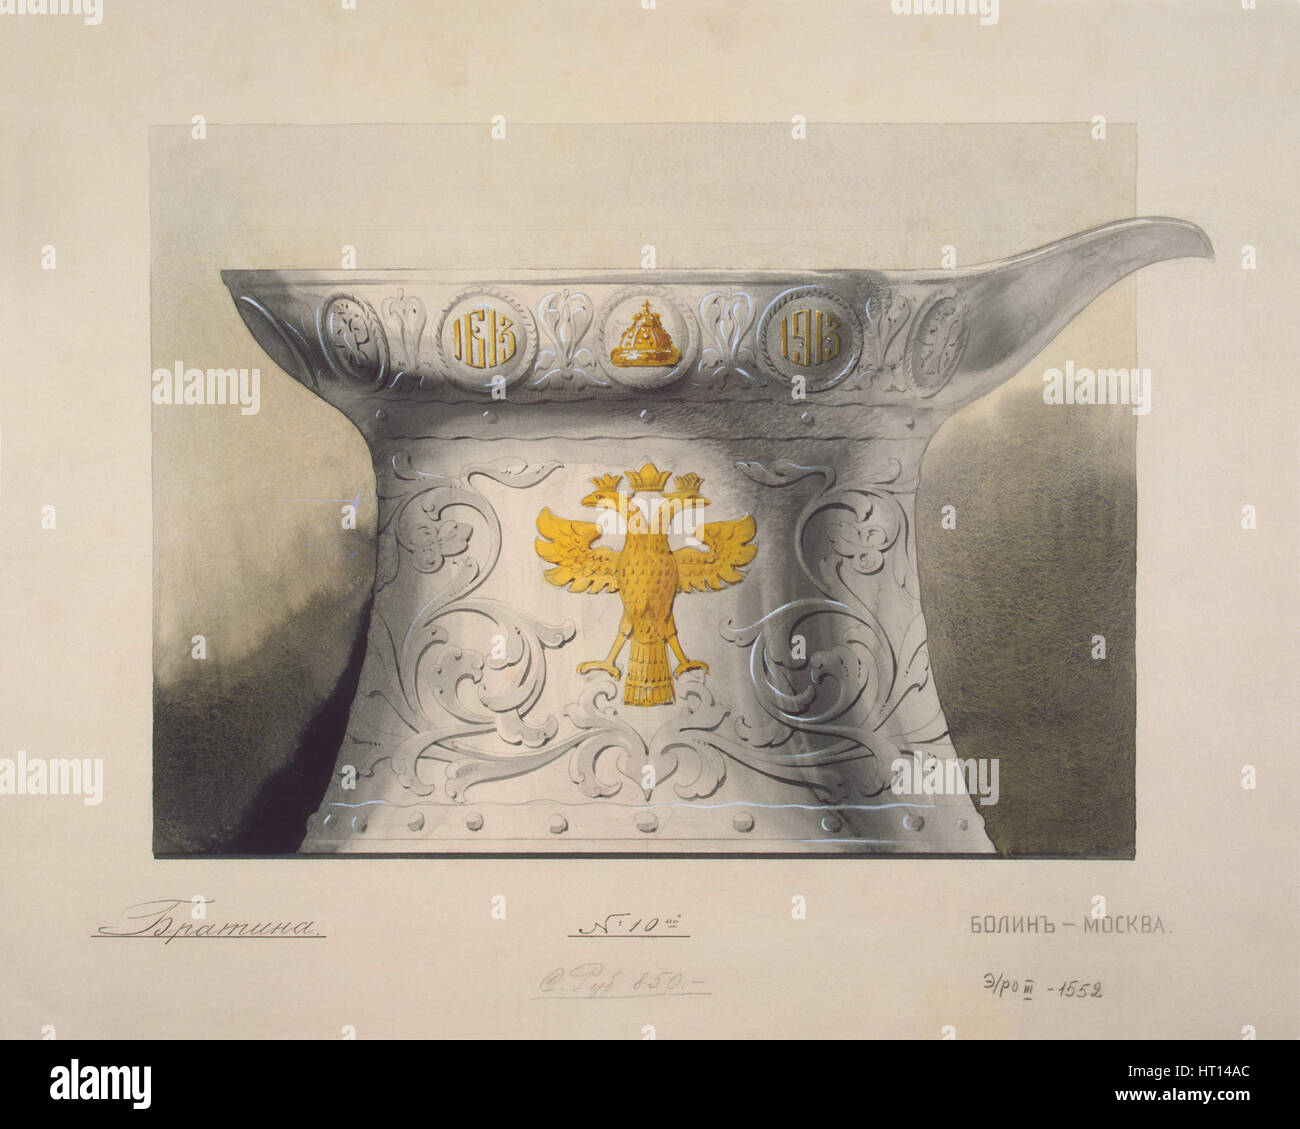 Design of a Cup. (Gifts commemorating the 300th Anniversary of the Romanov Dynasty), 1910s. Artist: Carl Edvard - Stock Image